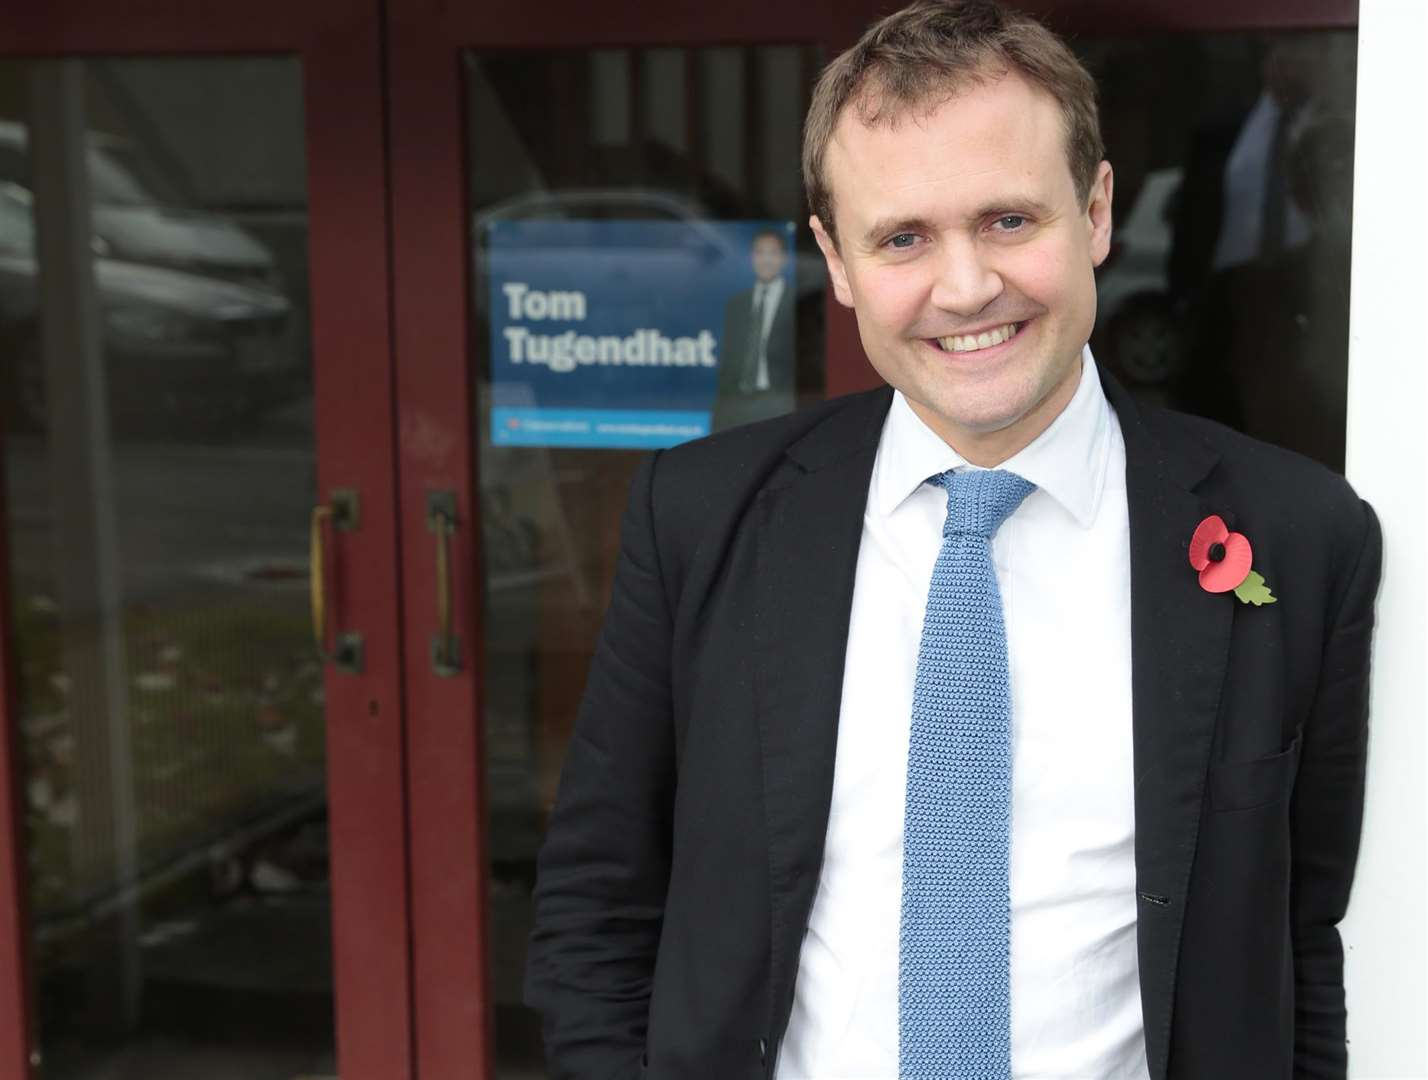 MP Tom Tugendhat